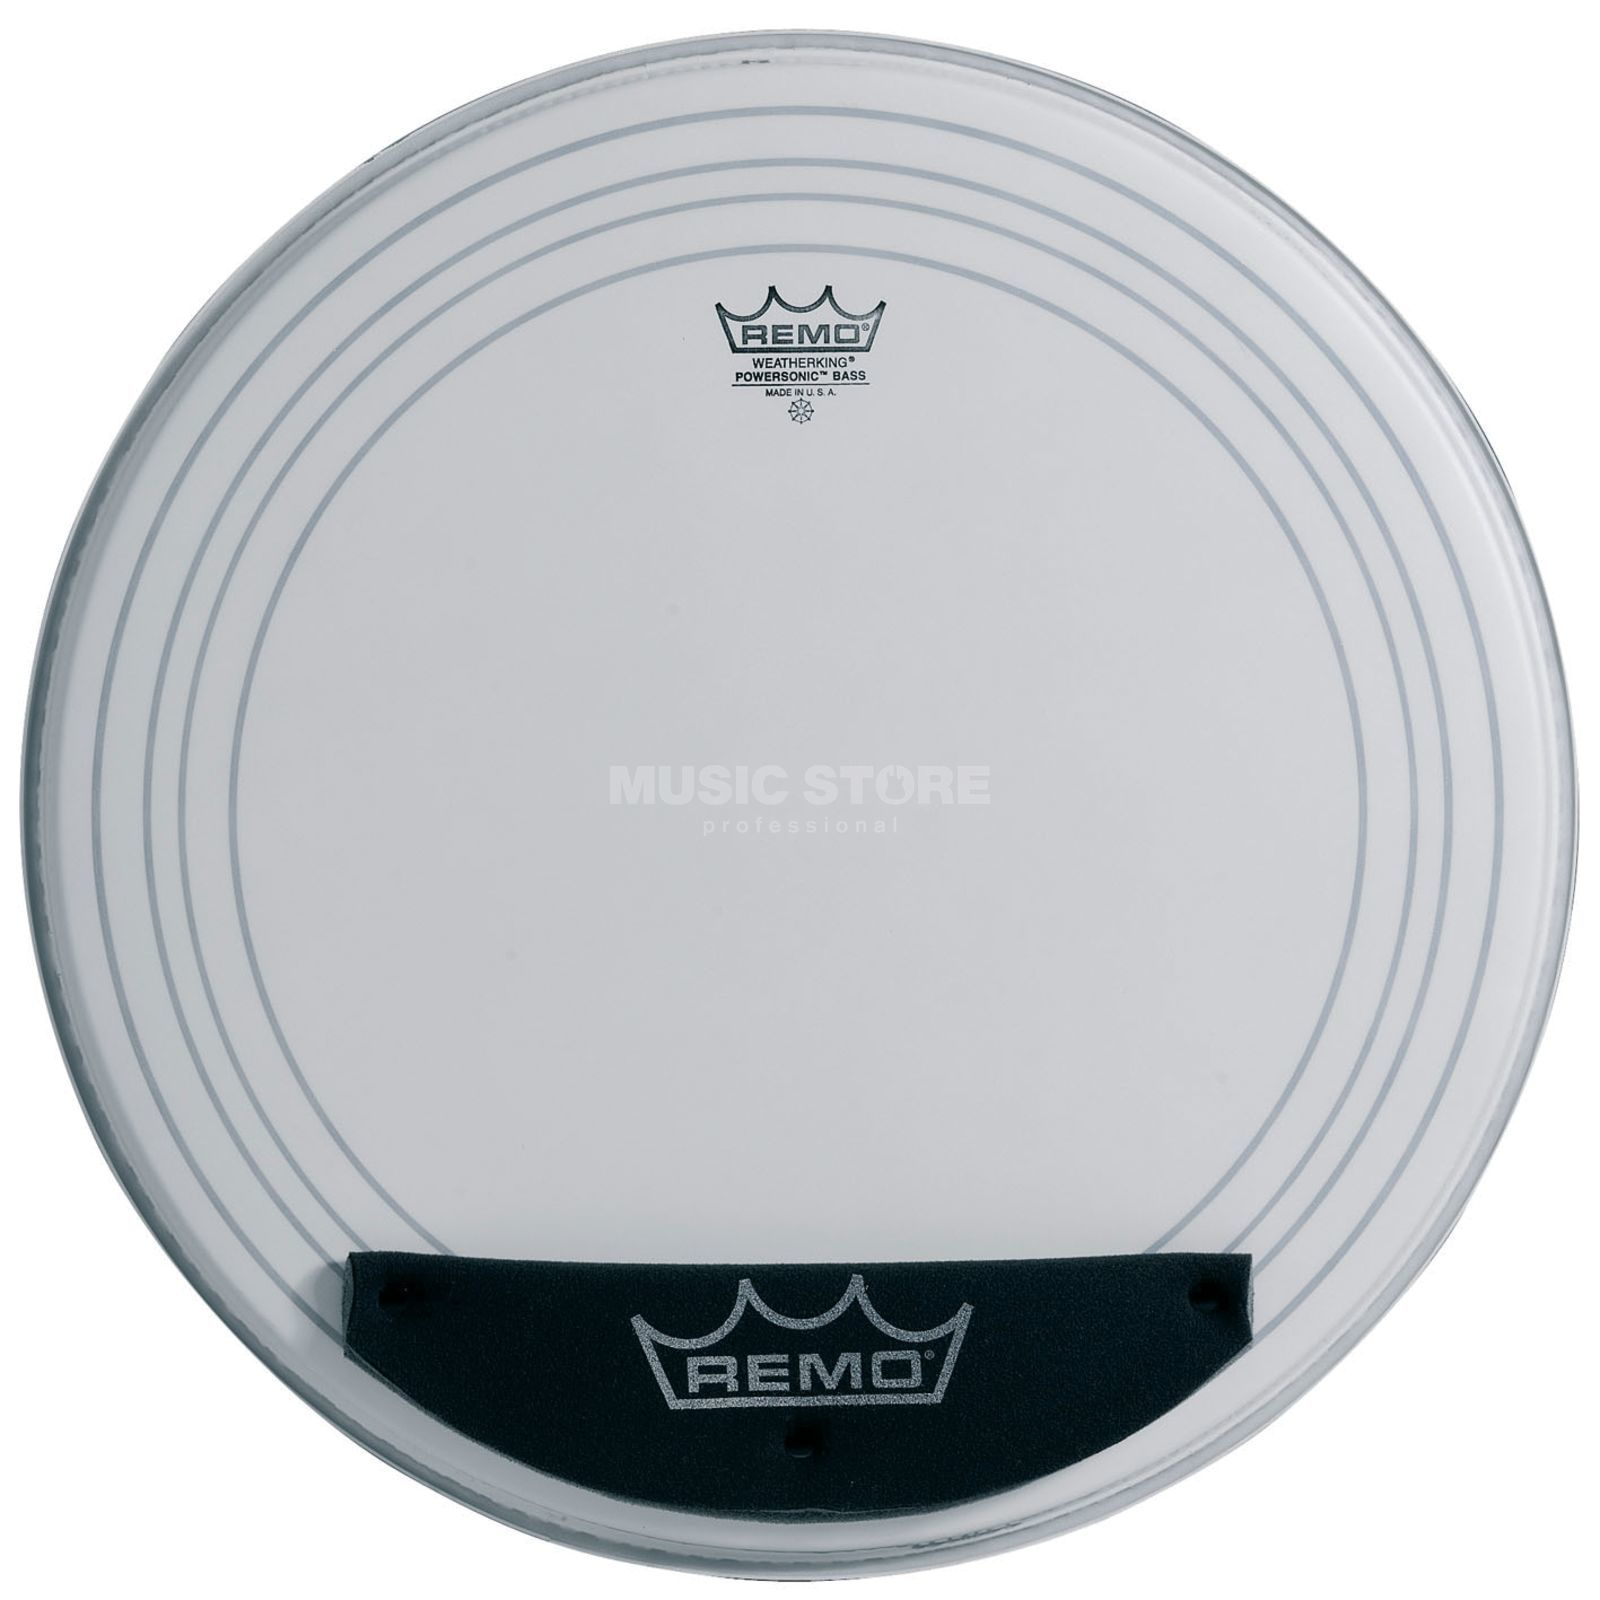 "Remo Powersonic 24"", coated, BassDrum Batter Head Produktbillede"